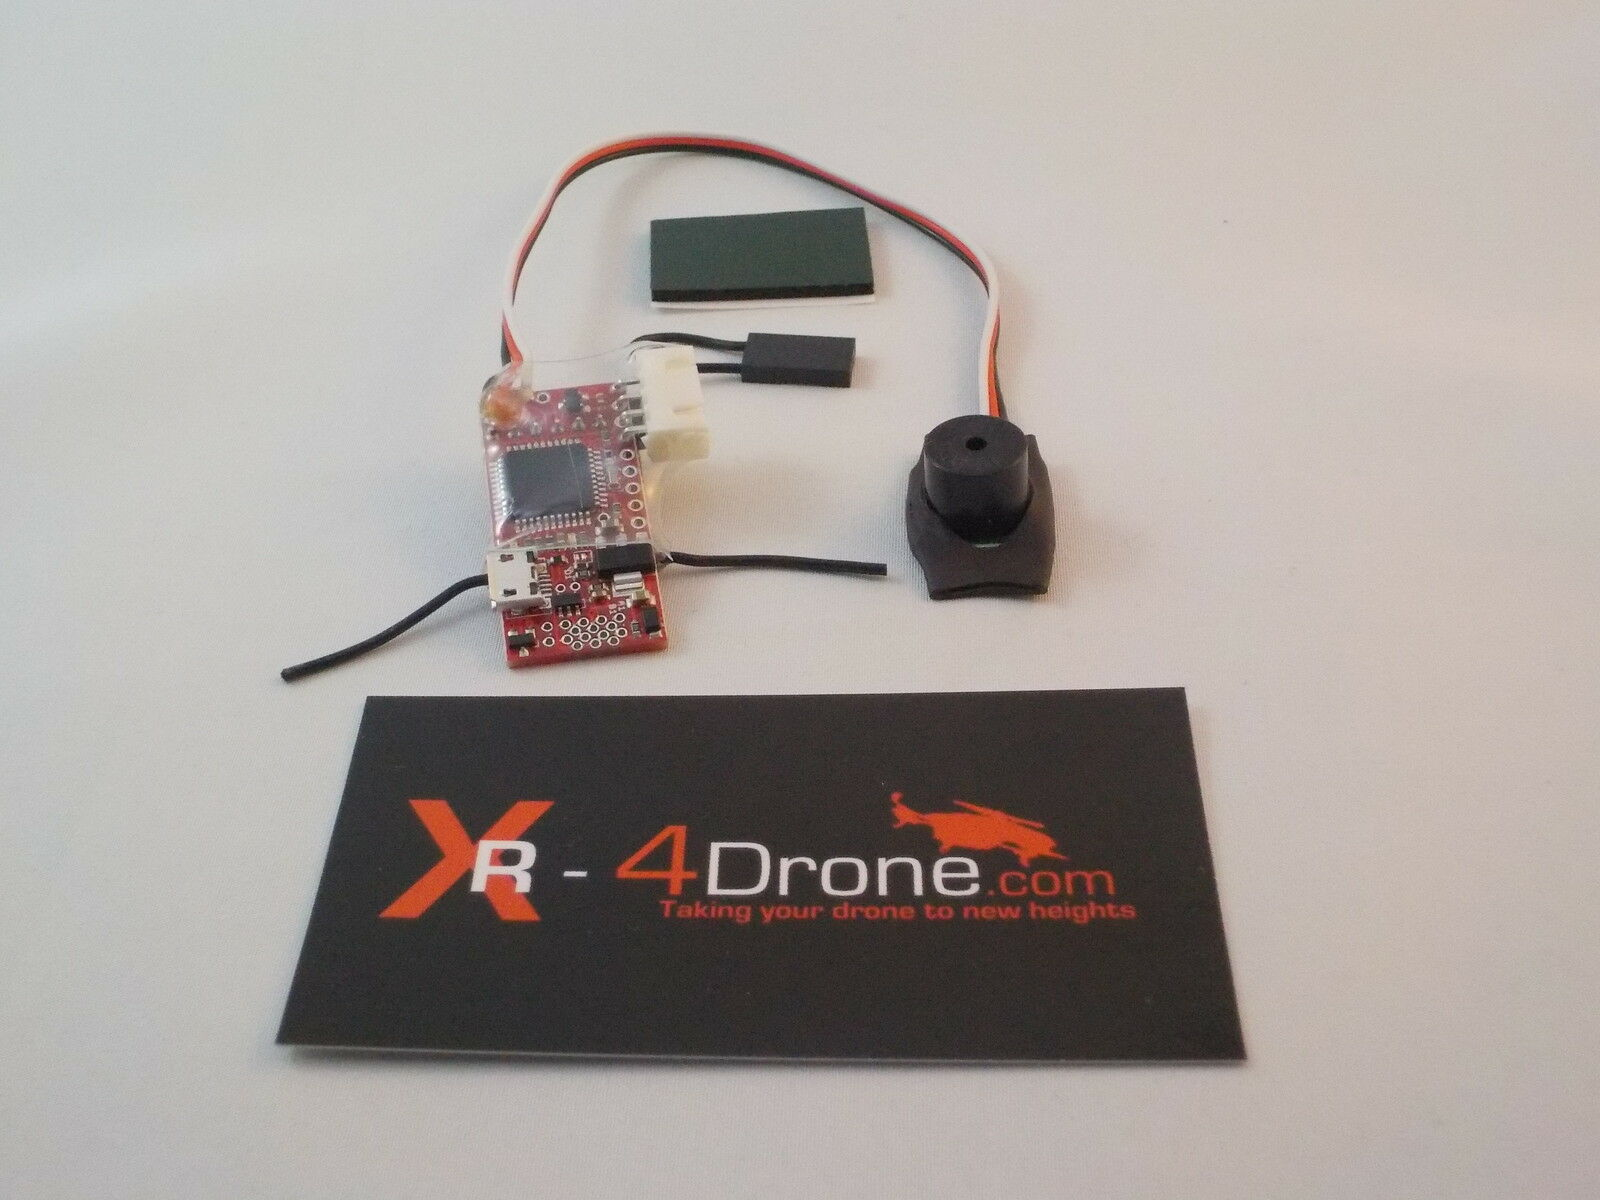 NEW XR-4Drone Mirumod AR-Drone 2.0 . Ultra Compact  with Locate Me Alarm